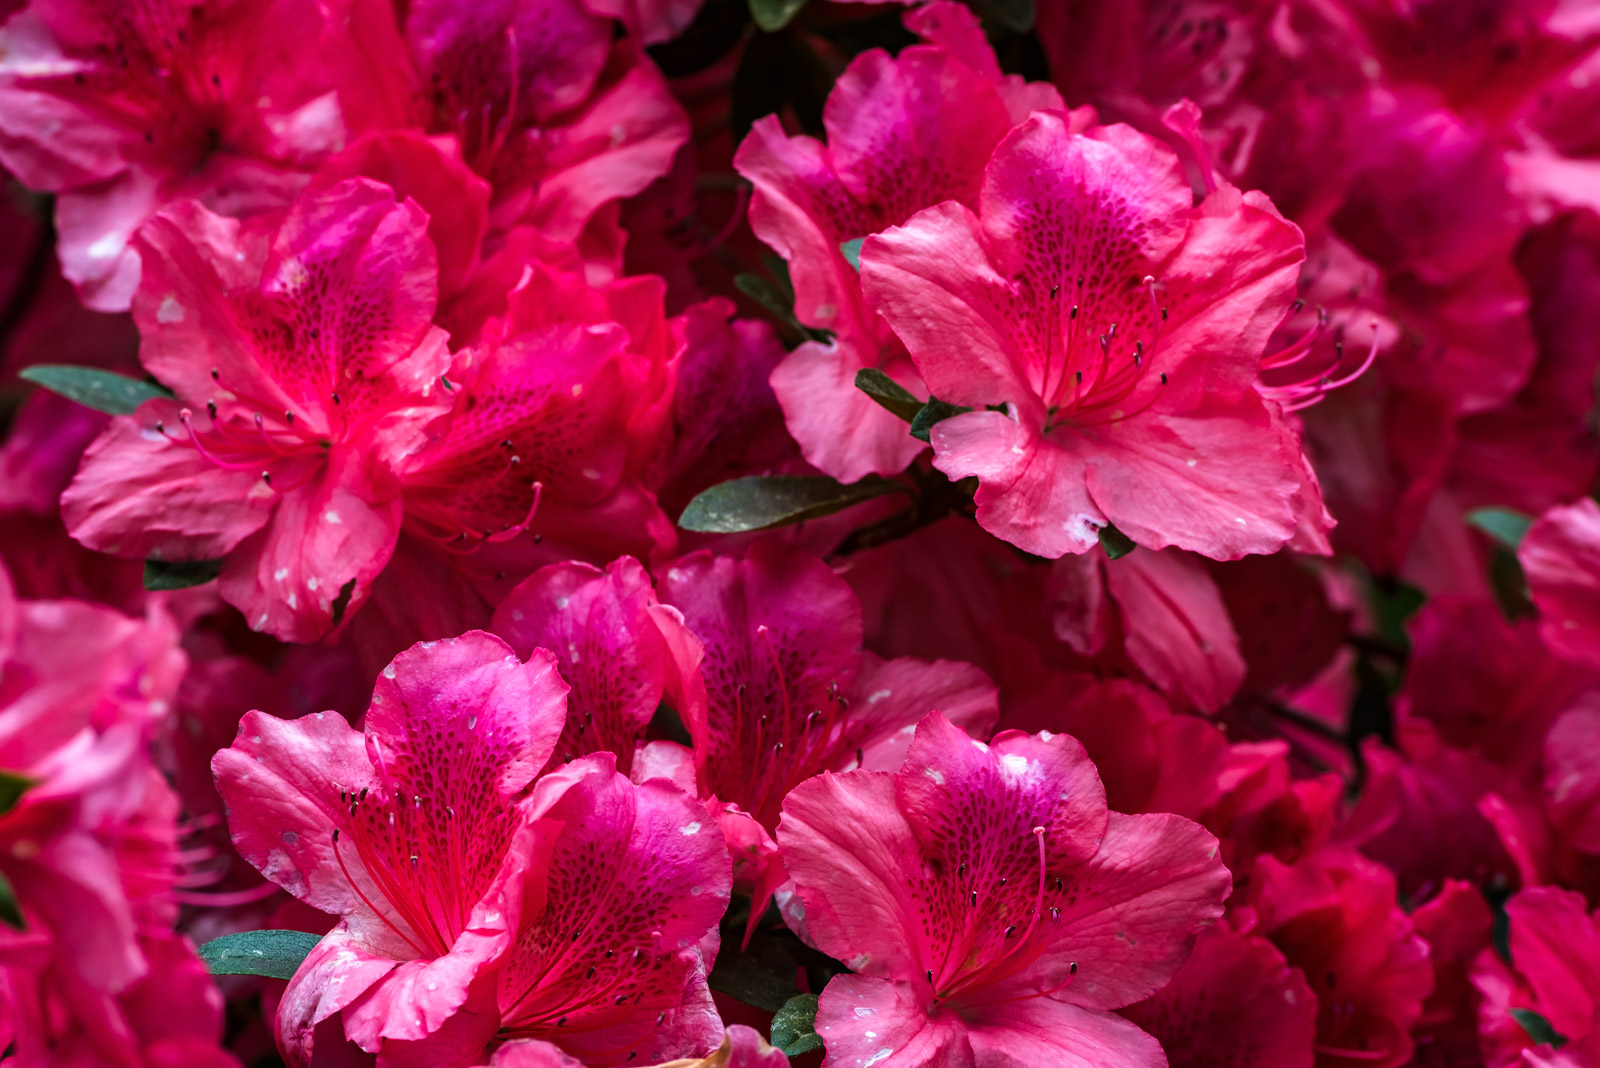 A Limited Edition, Fine Art photograph of a closeup of awesome red Azaleas blooming in the spring at the Magnolia Plantation...